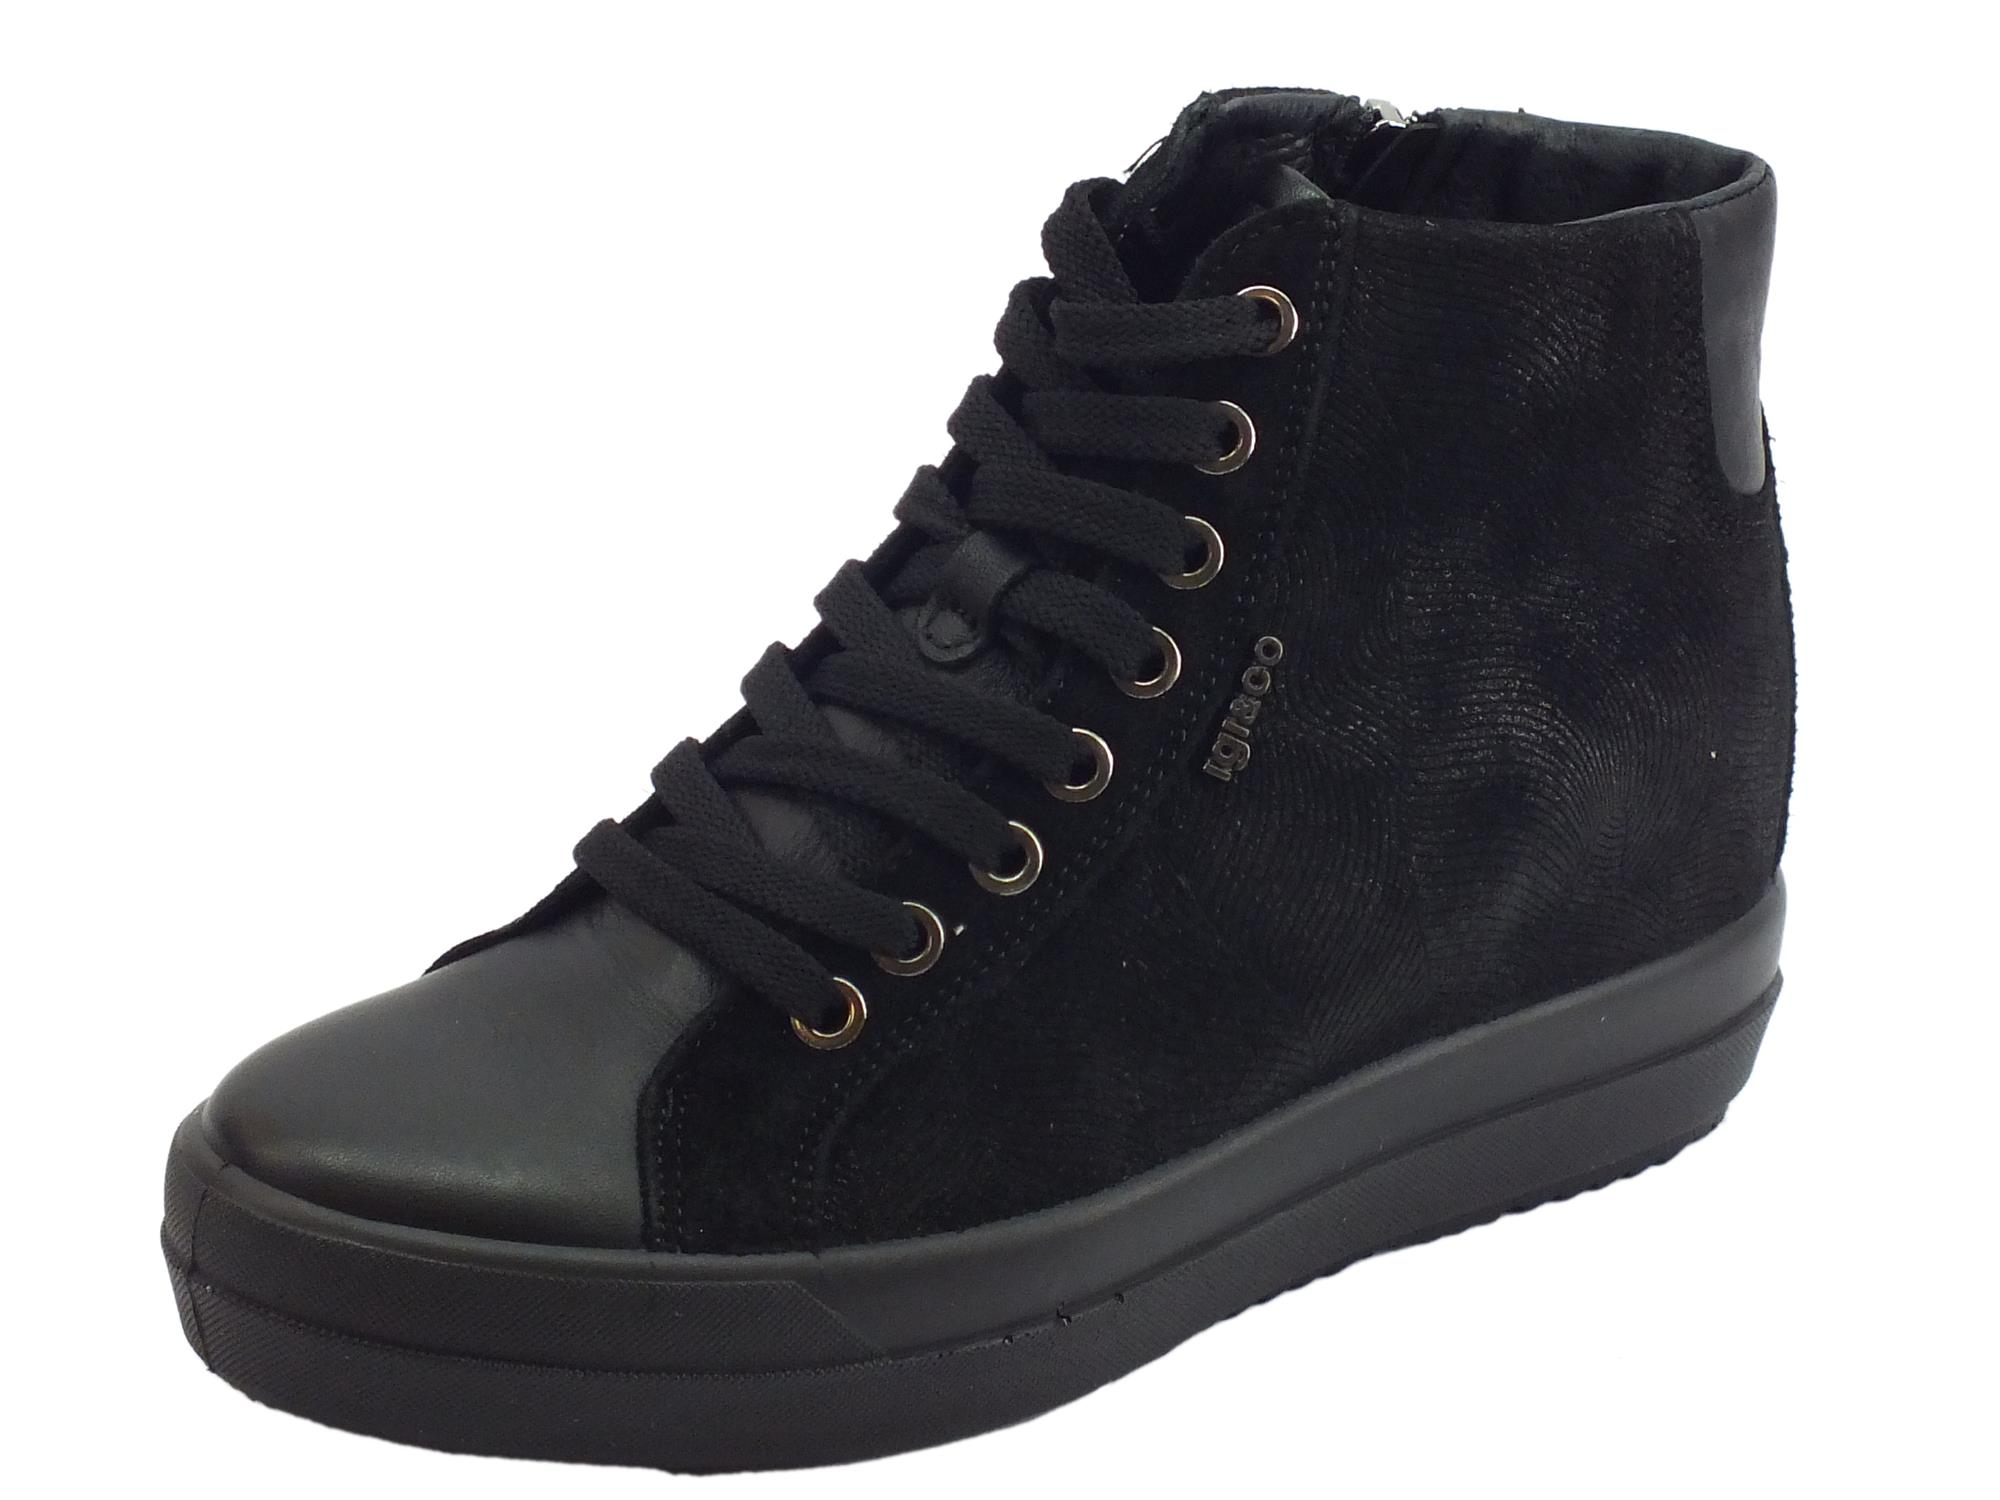 Sneakers Igi Co per donna in scamosciato nero zeppa interna media c8764fae770